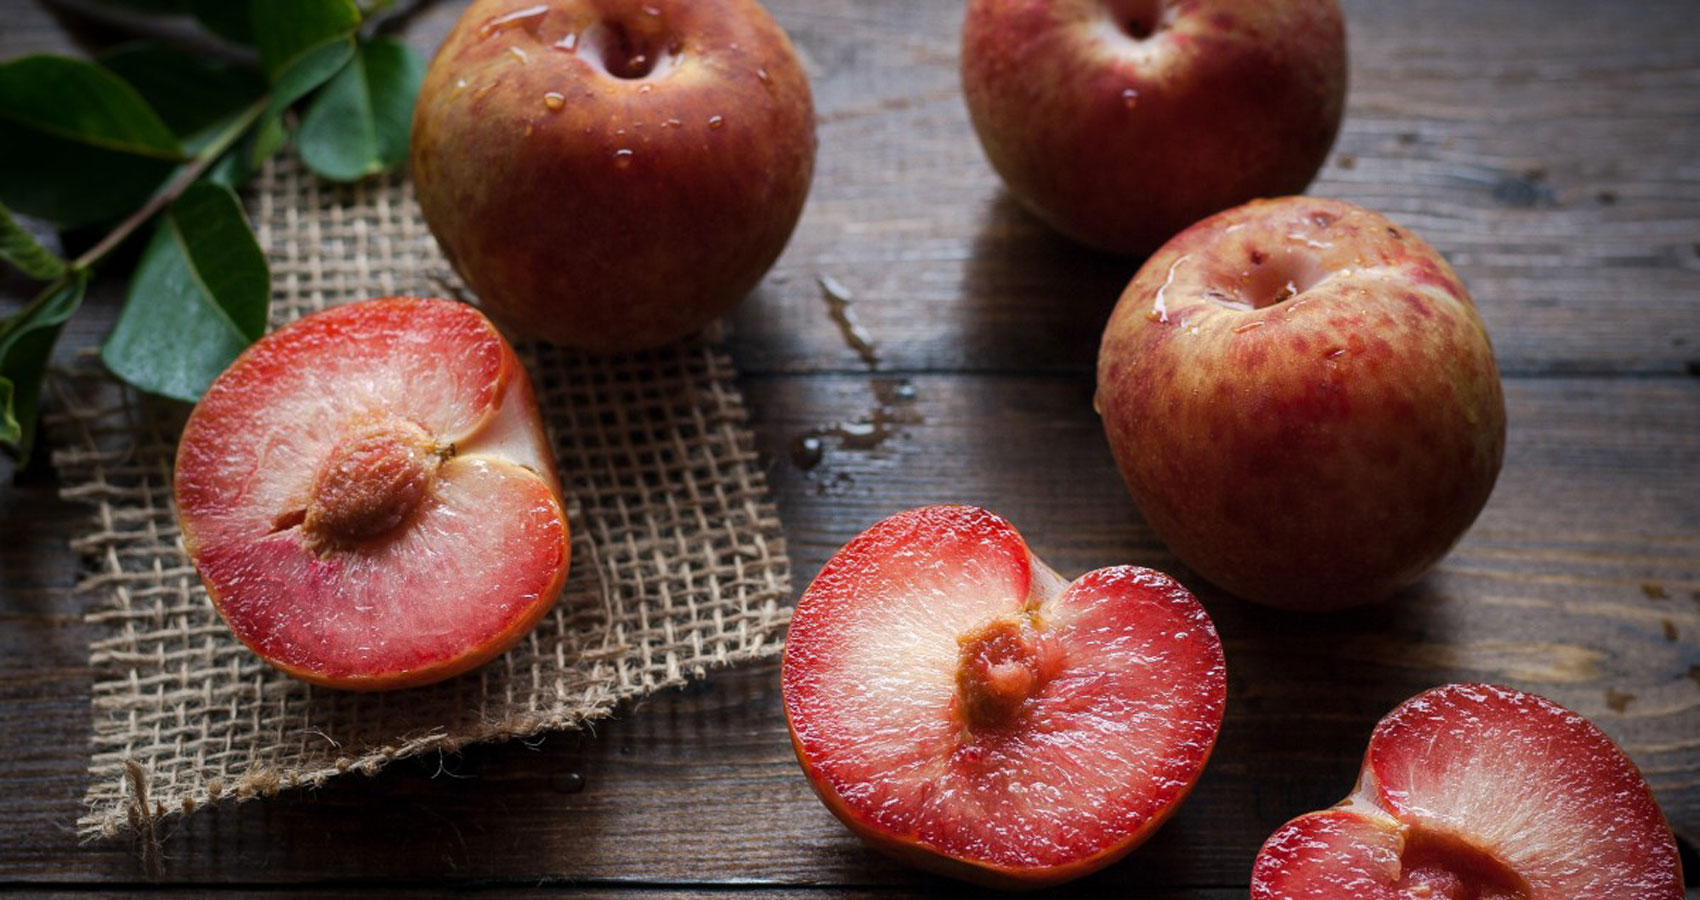 Night Of The Nectarine, written by Heath Brougher at Spillwords.com